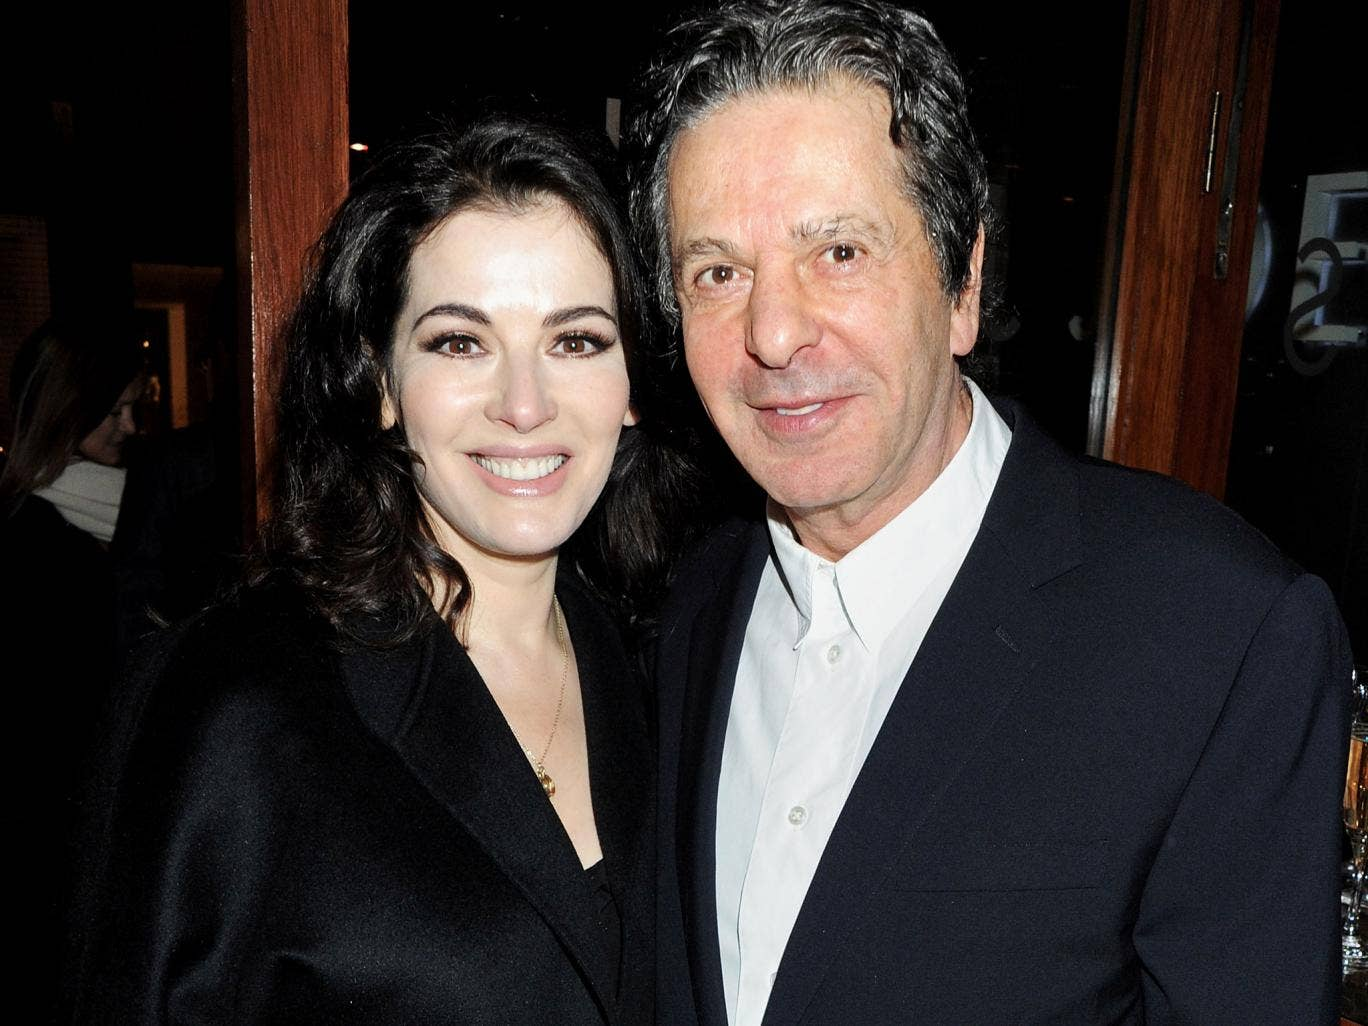 Nigella Lawson and Charles Saatchi parted in June